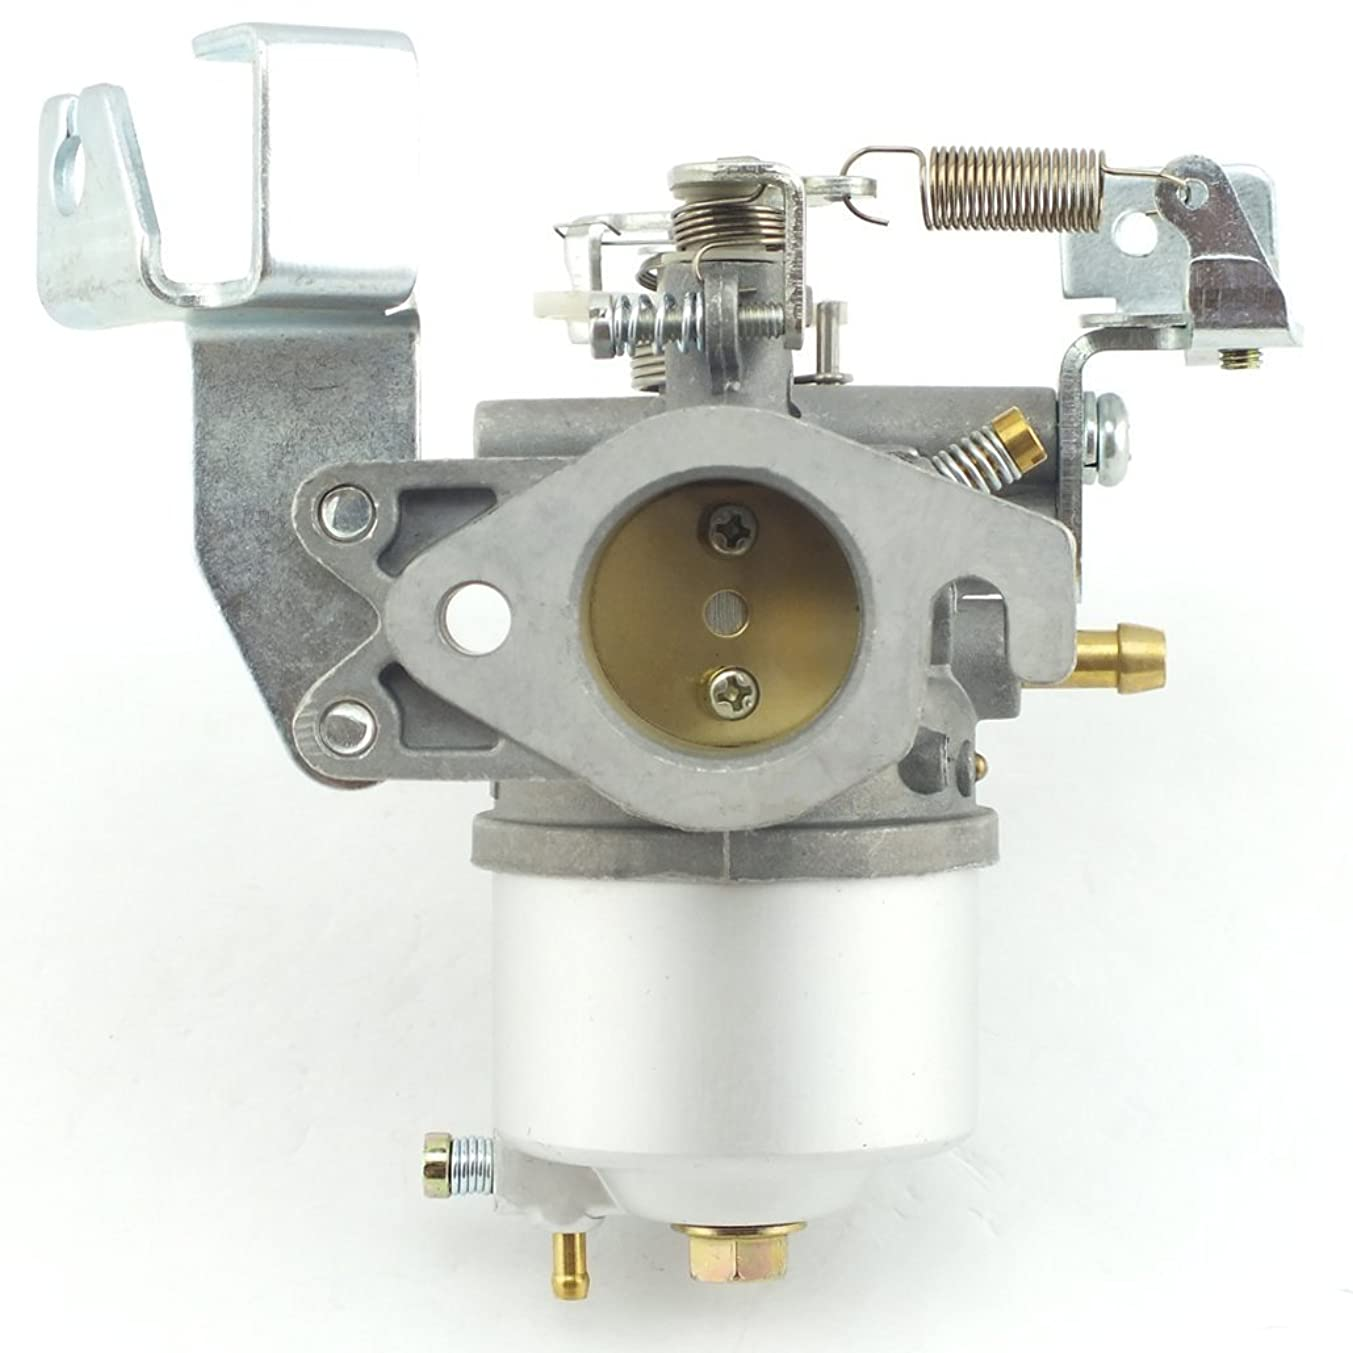 High-performance Golf Cart Carburetor For Yamaha G14 1995-1996 Carb with 4Cycle engine